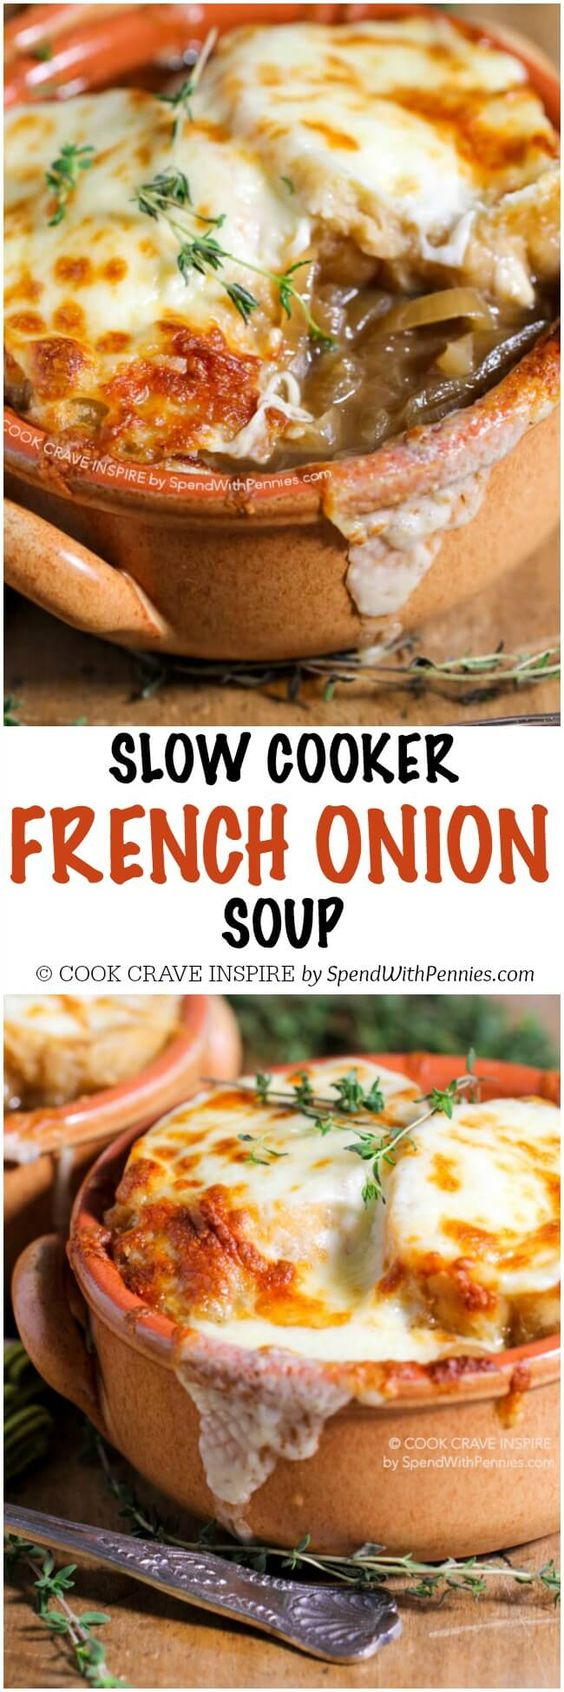 Slow Cooker French Onion Soup | Recipe | French onion ...